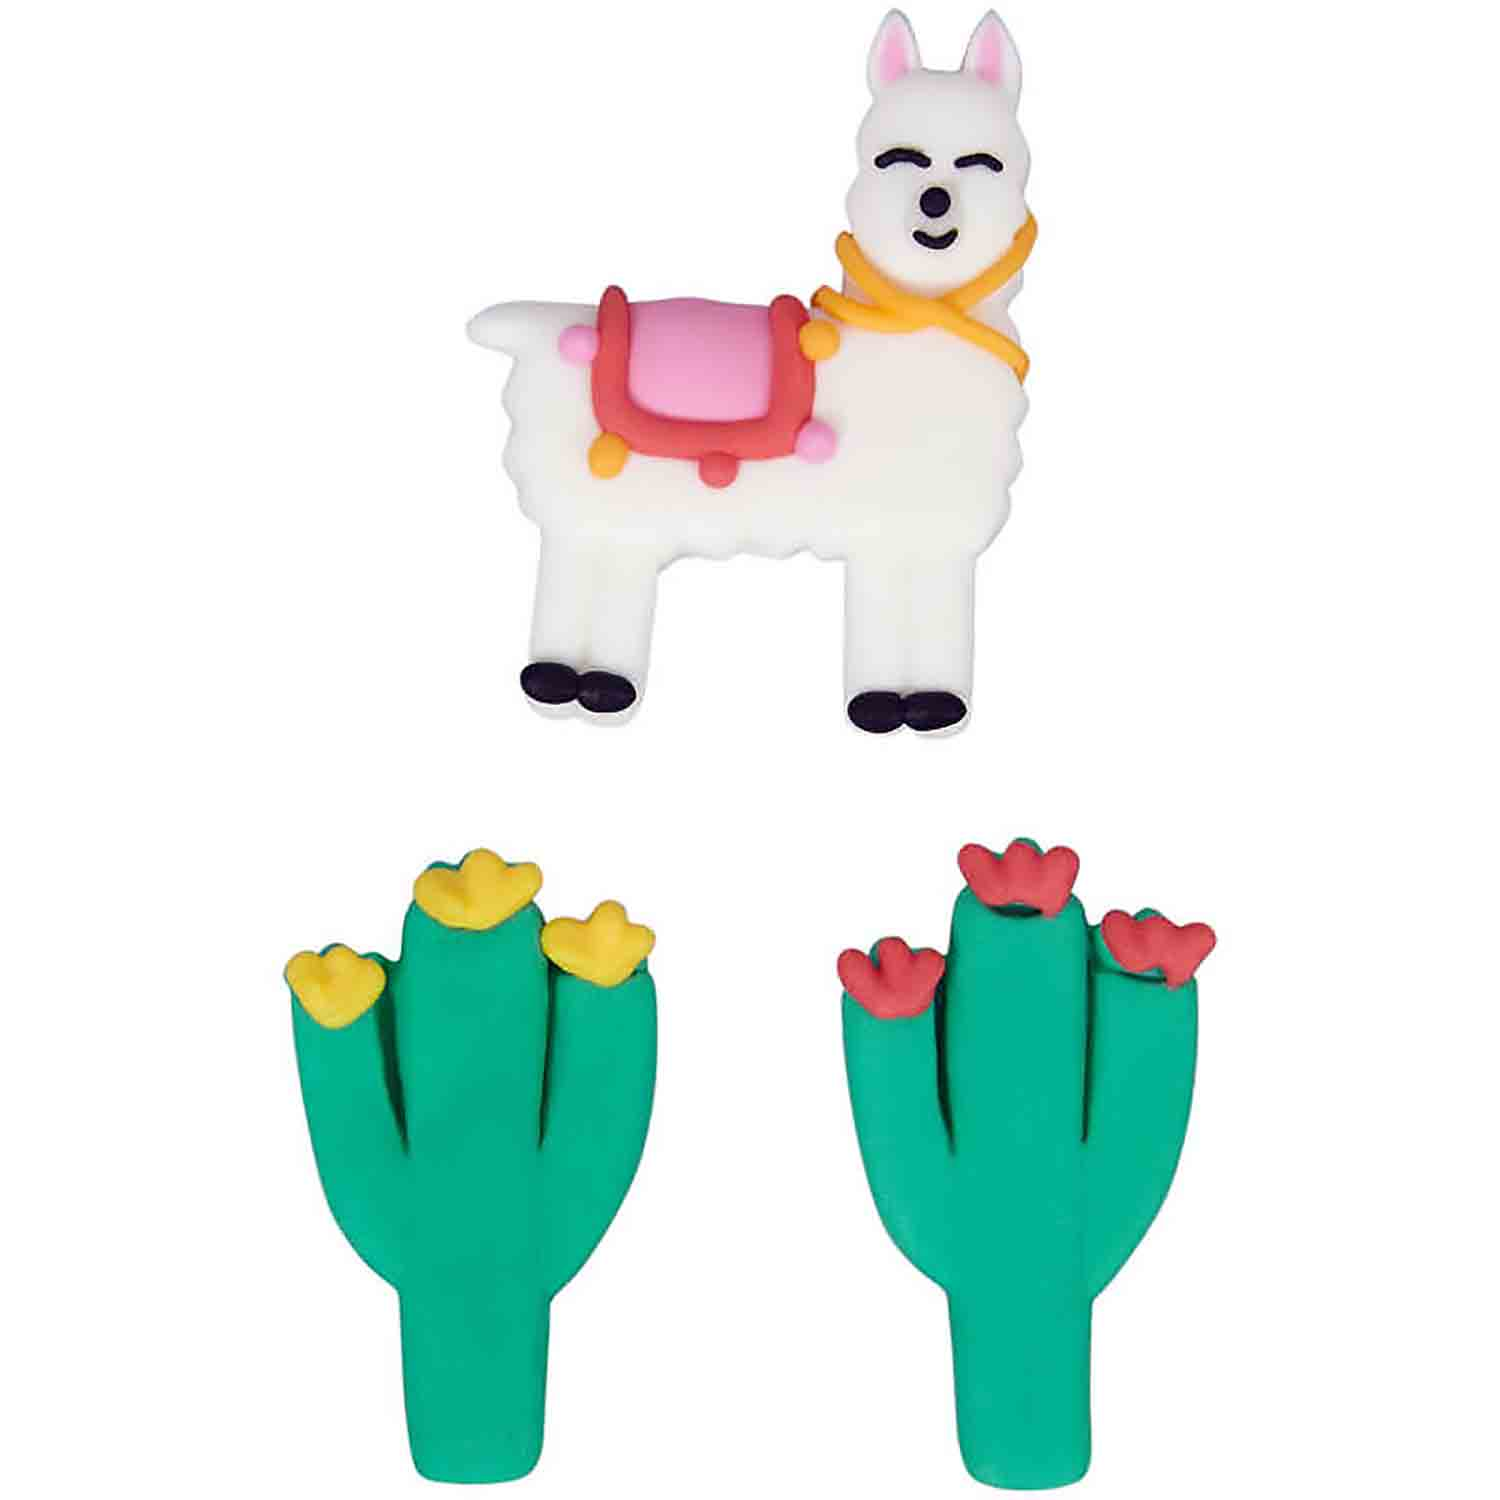 Cactus Llama Royal Icing Decorations